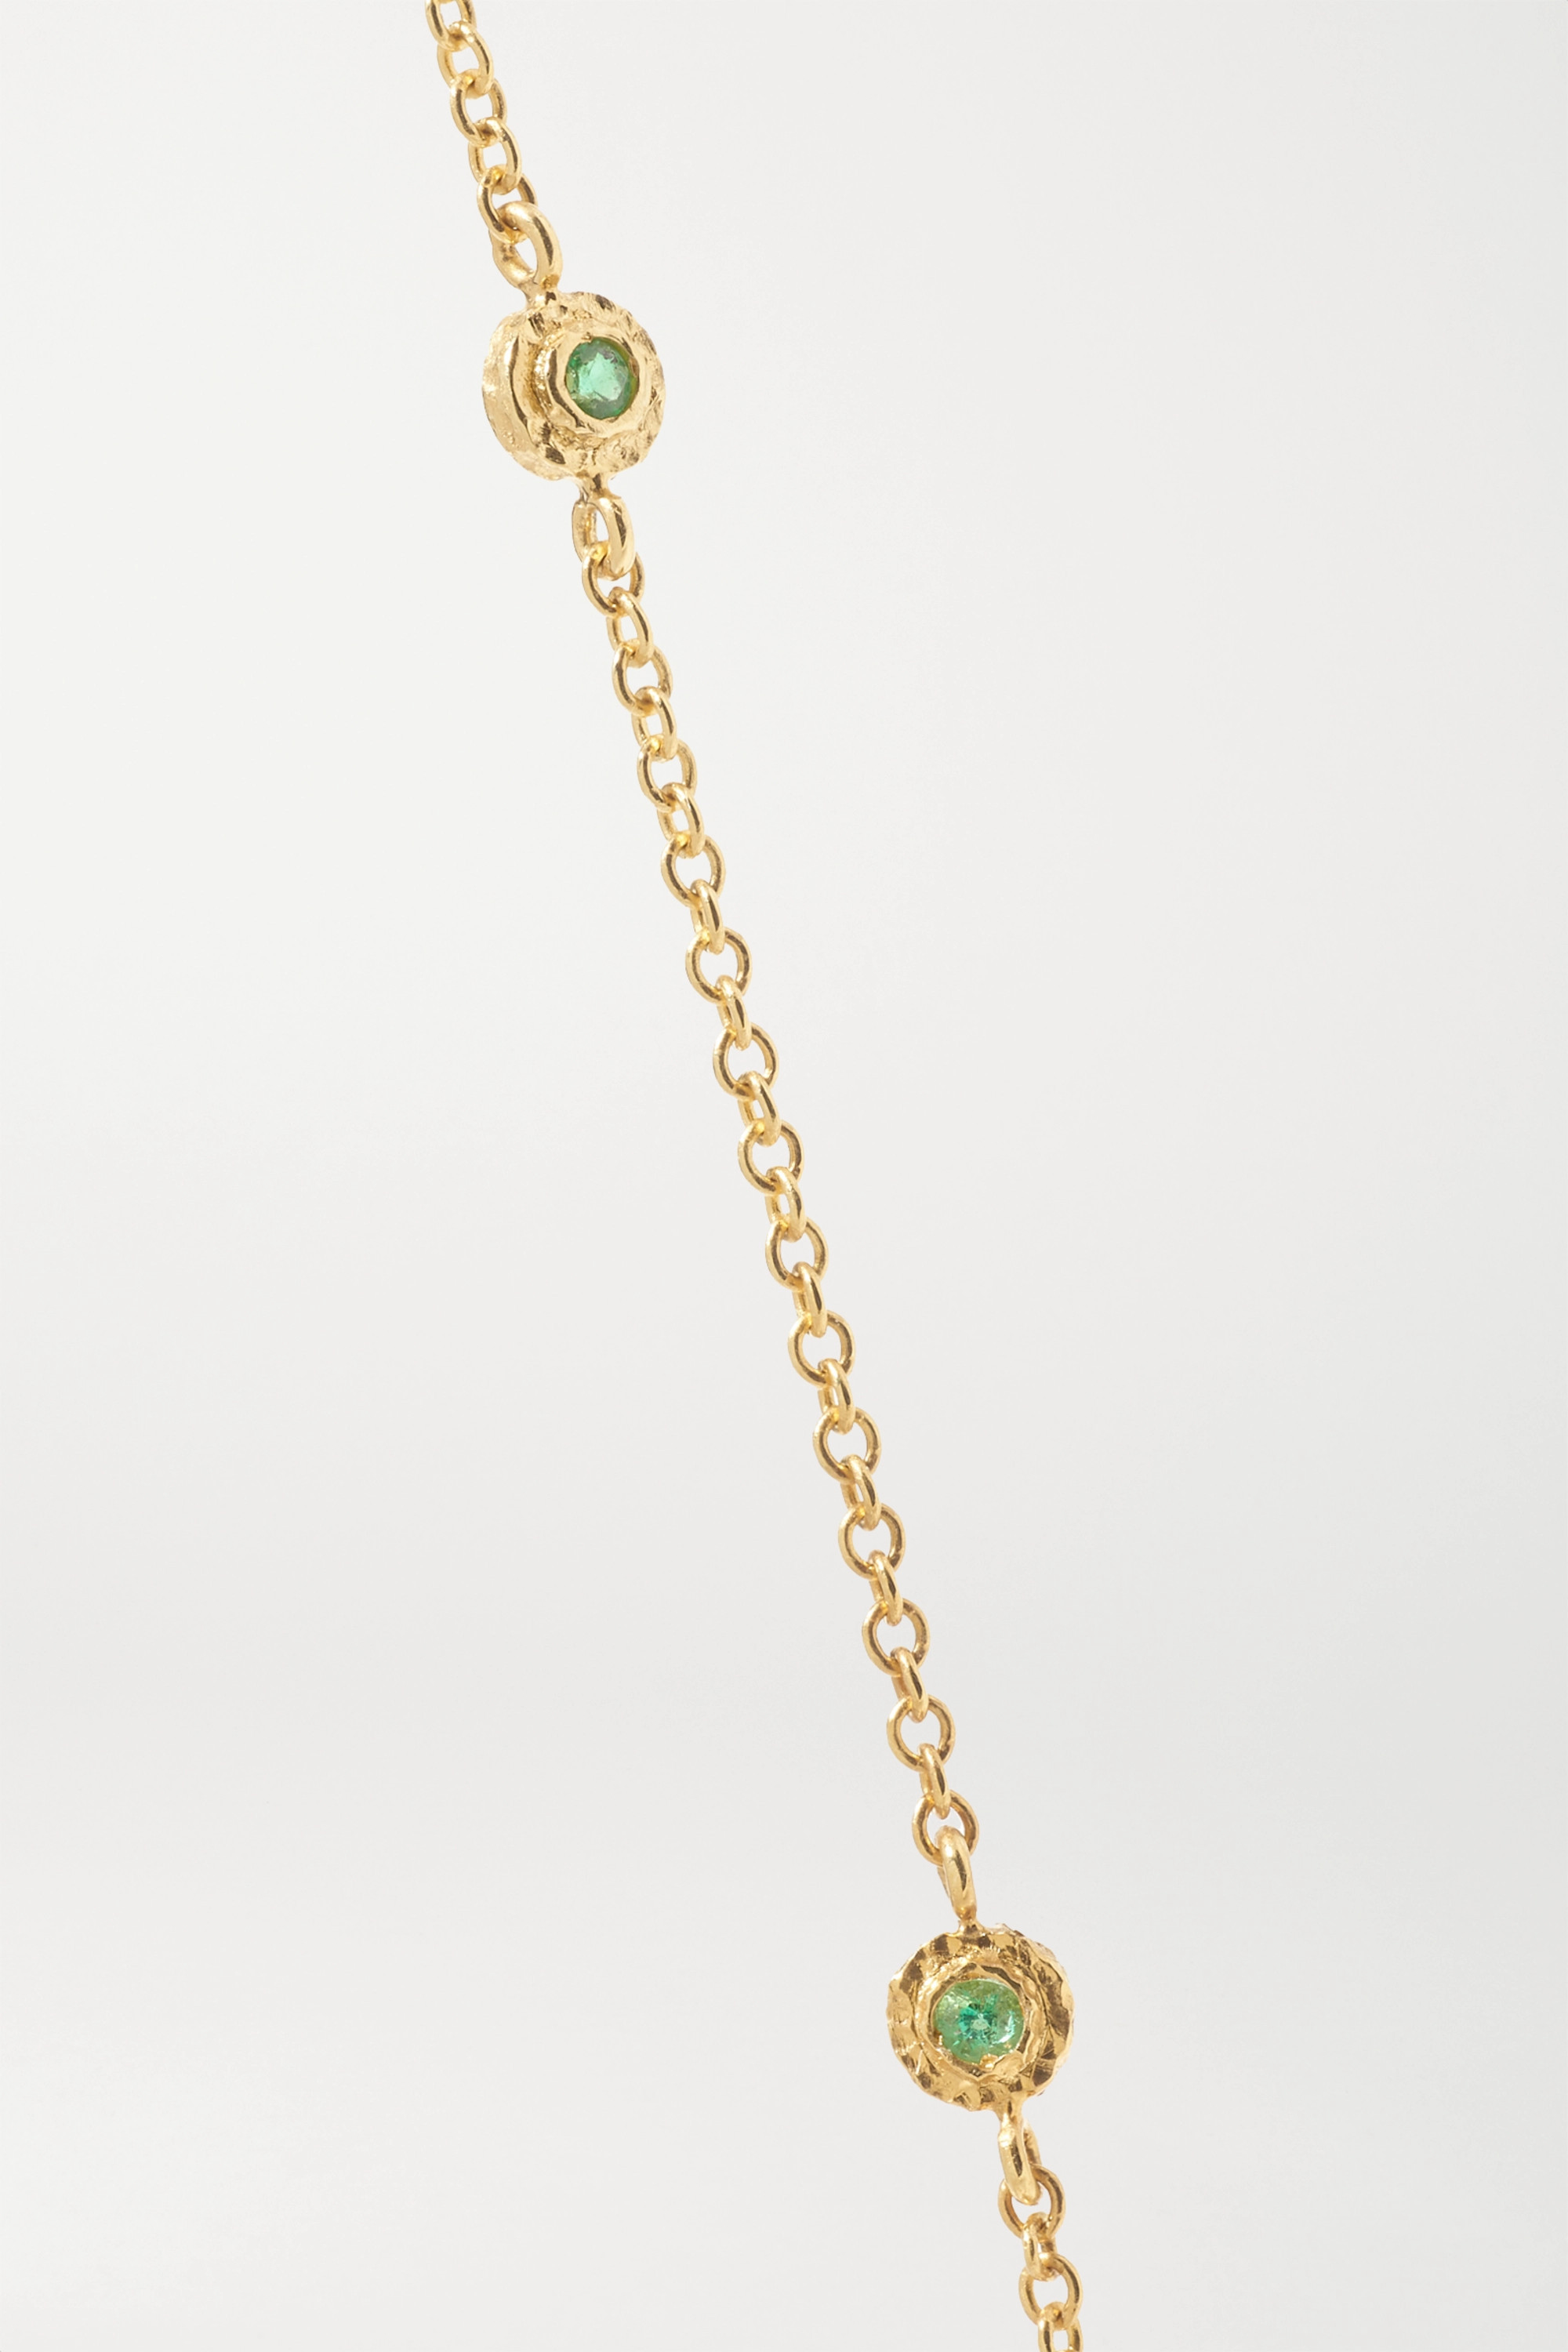 Octavia Elizabeth + NET SUSTAIN Nesting Gem 18-karat gold emerald necklace